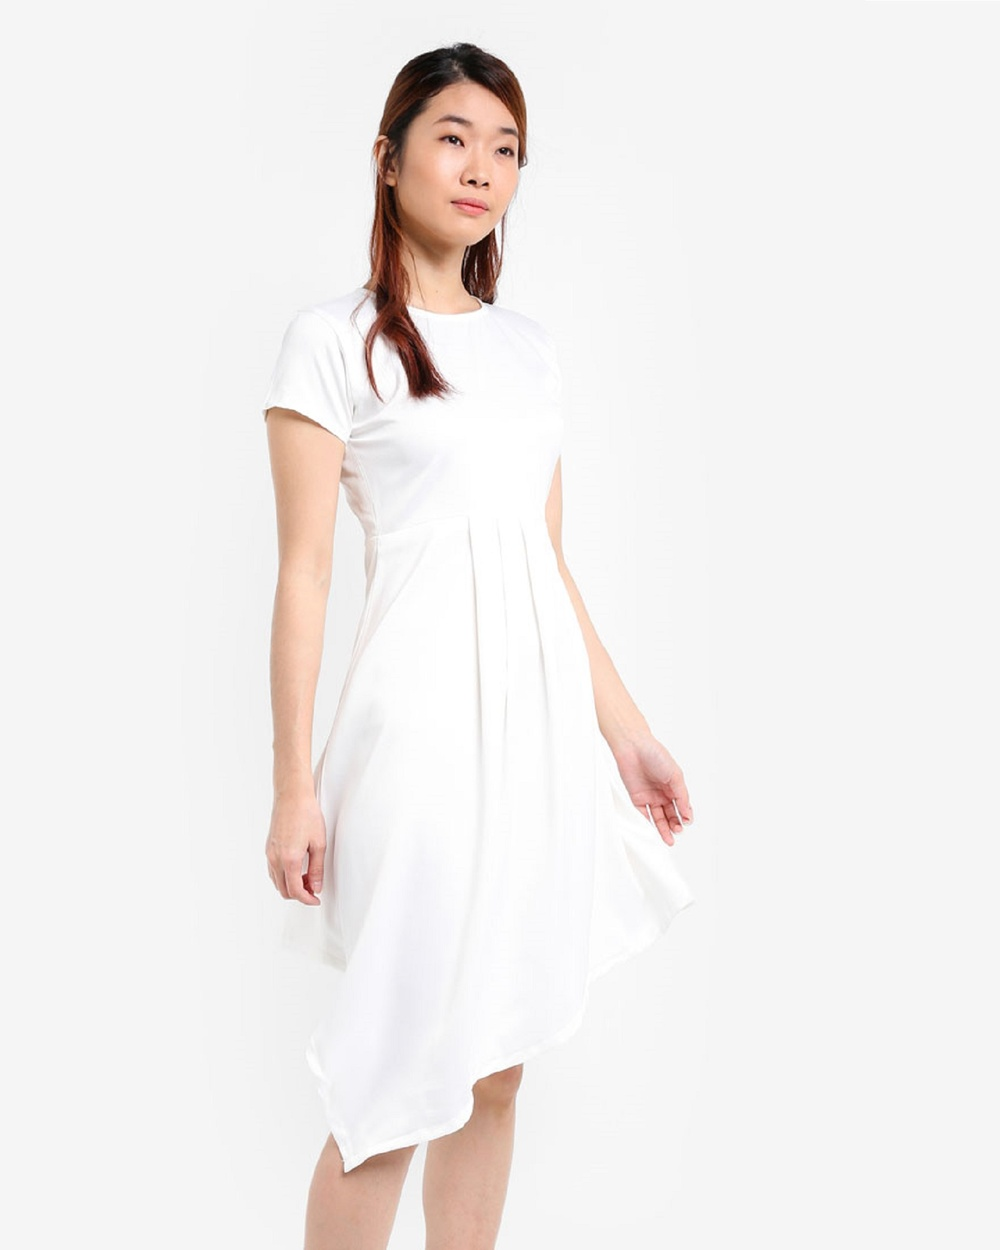 Photo of BoyFromBlighty BoyFromBlighty Drape Dress Dresses White Drape Dress - Give your wardrobe a boost with a signature Drape Dress by BoyFromBlighty. This on style, short sleeved dress boasts a round neckline, chevron jacquered drape detail and a zip fastening for ease. Our Model is wearing a size S. She usually takes an international size S, is 178 cm tall, has a 84cm bust, 91cm hips and a 59cm waist. - Length: 92cm (Size S) - Solid colour - Short sleeved -